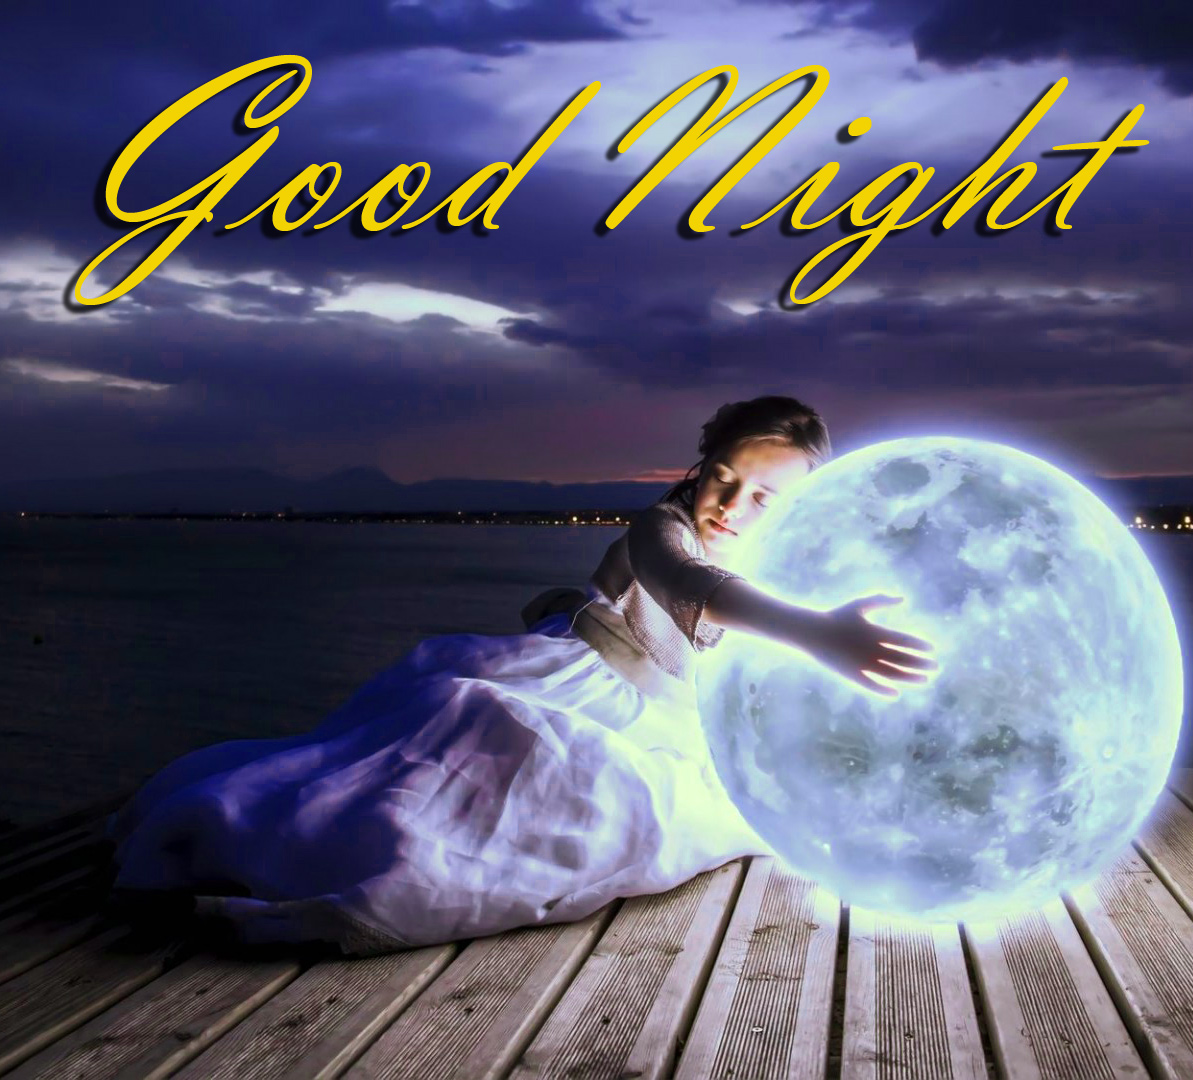 Good Night Images Wallpaper Photo Pic Free Download for Facebook